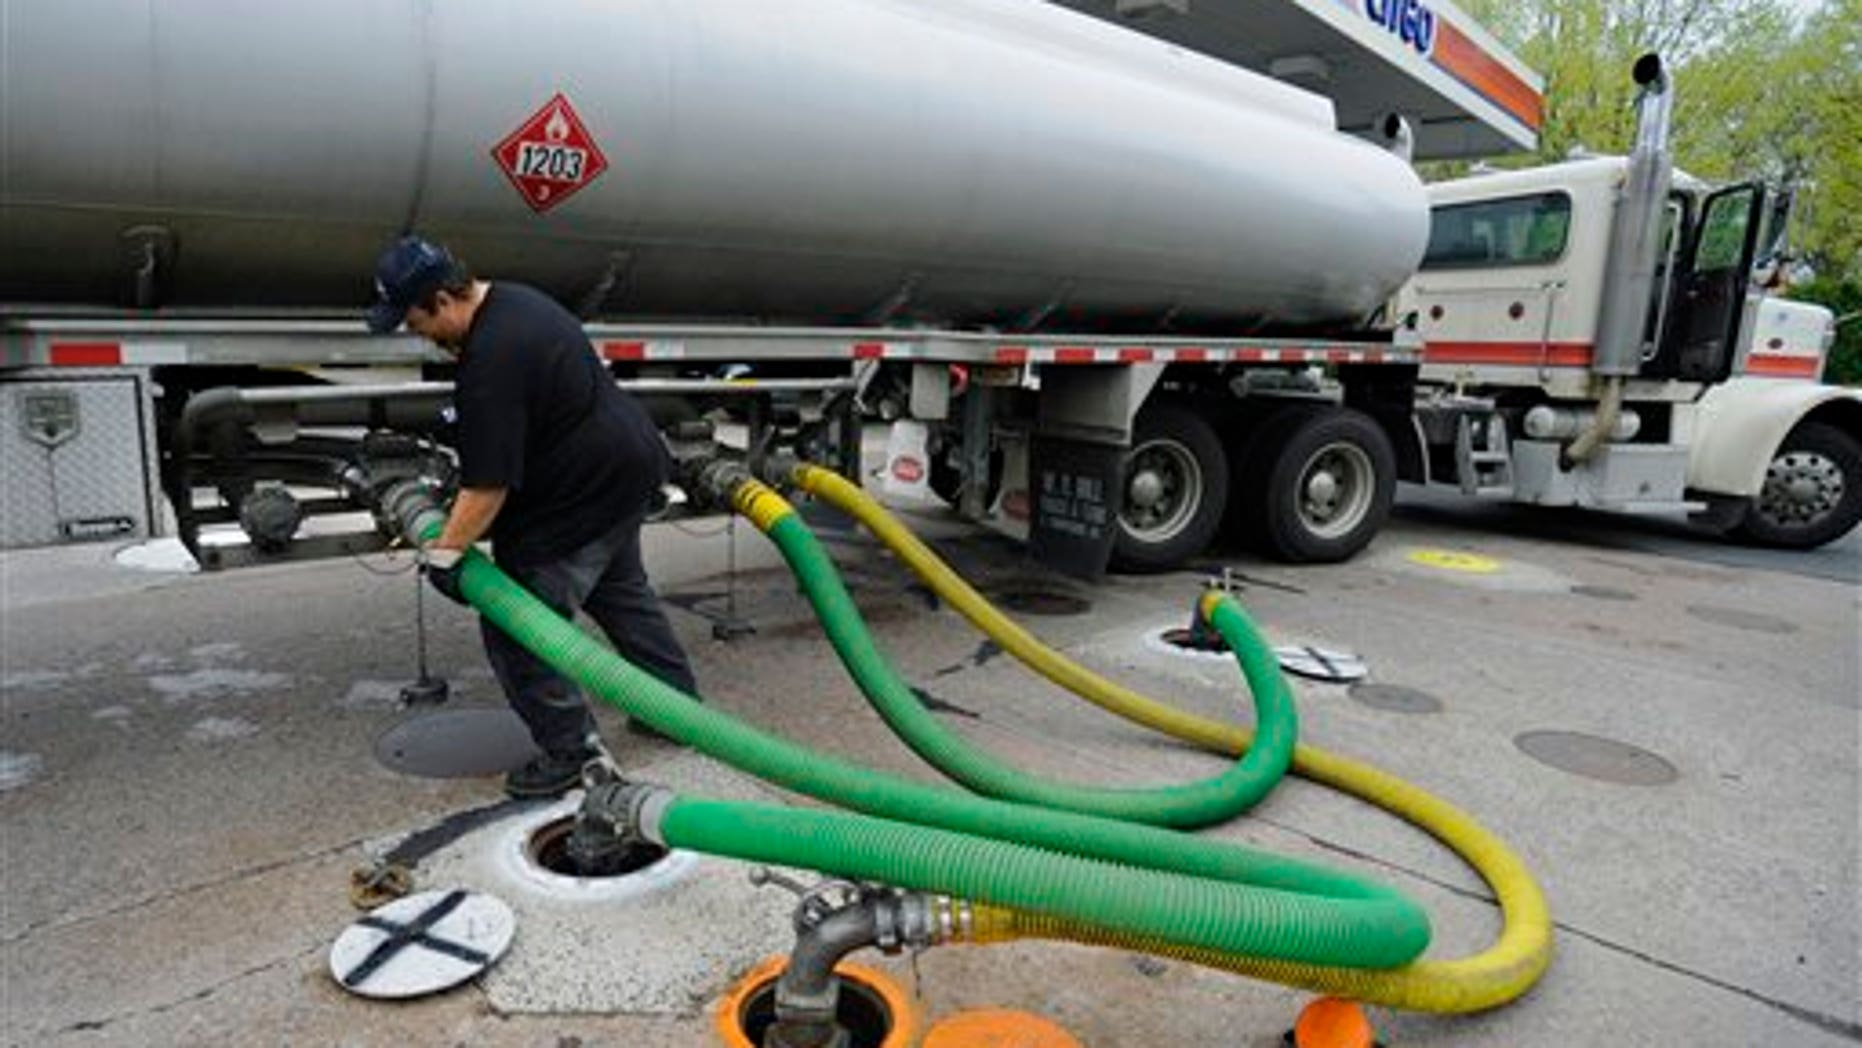 April 2011: A truck delivers gas to a CITGO station in Wethersfield, Conn.